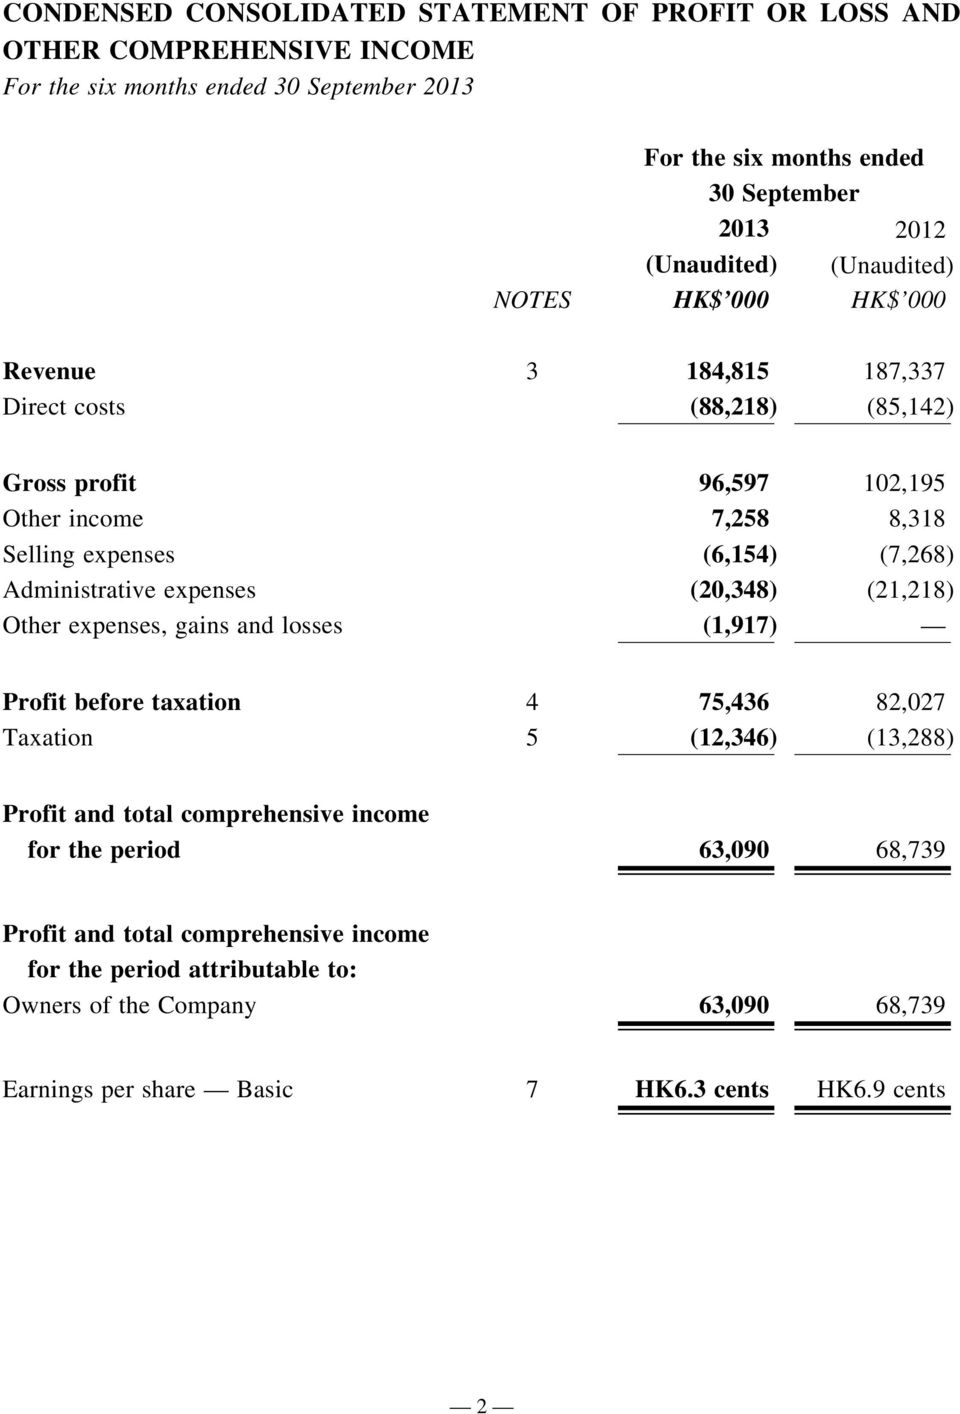 Administrative expenses (20,348) (21,218) Other expenses, gains and losses (1,917) Profit before taxation 4 75,436 82,027 Taxation 5 (12,346) (13,288) Profit and total comprehensive